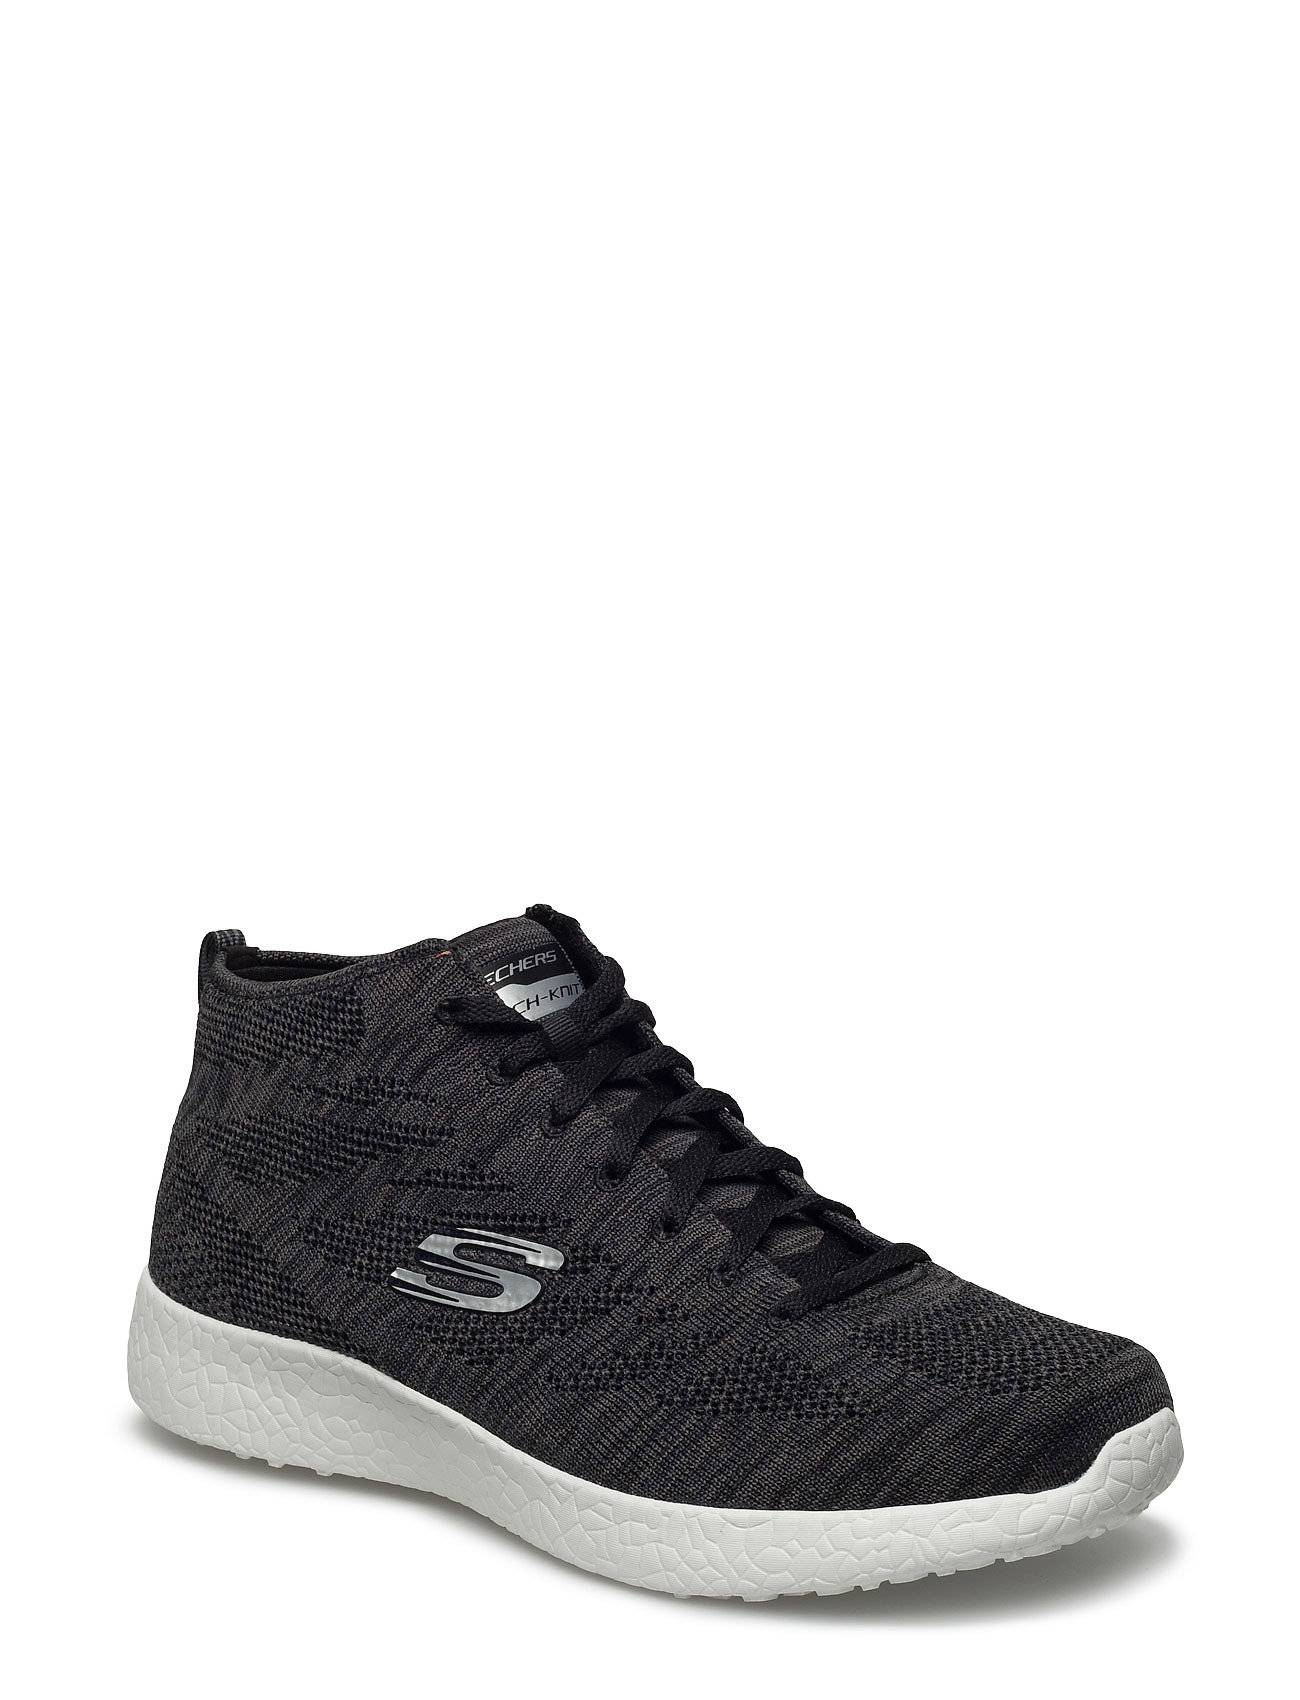 Skechers Mens Burst - Up And Under